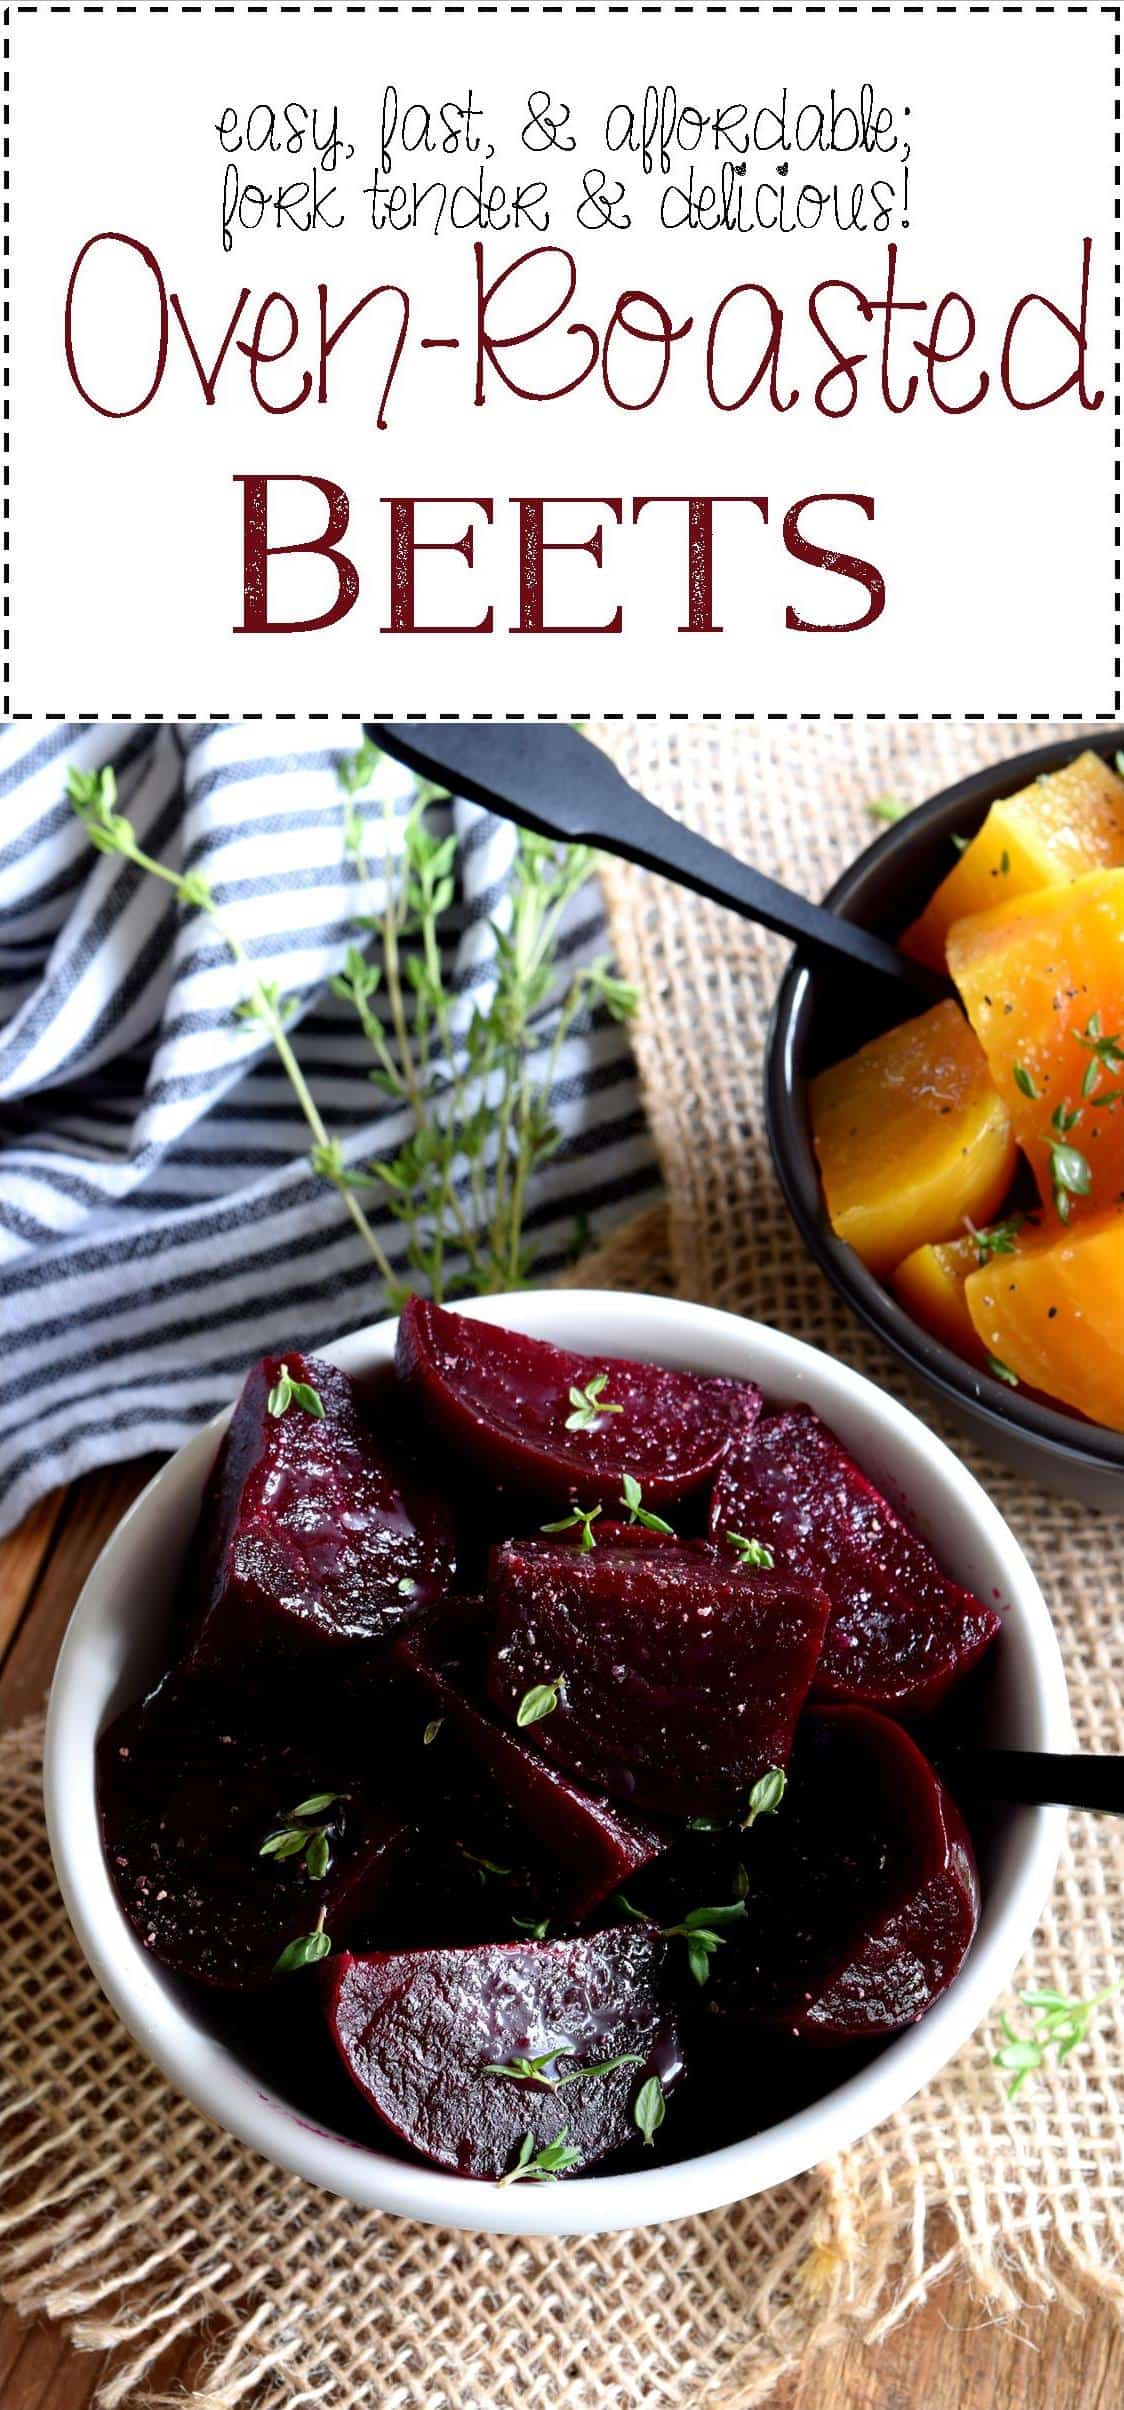 Easy Oven Roasted Beets